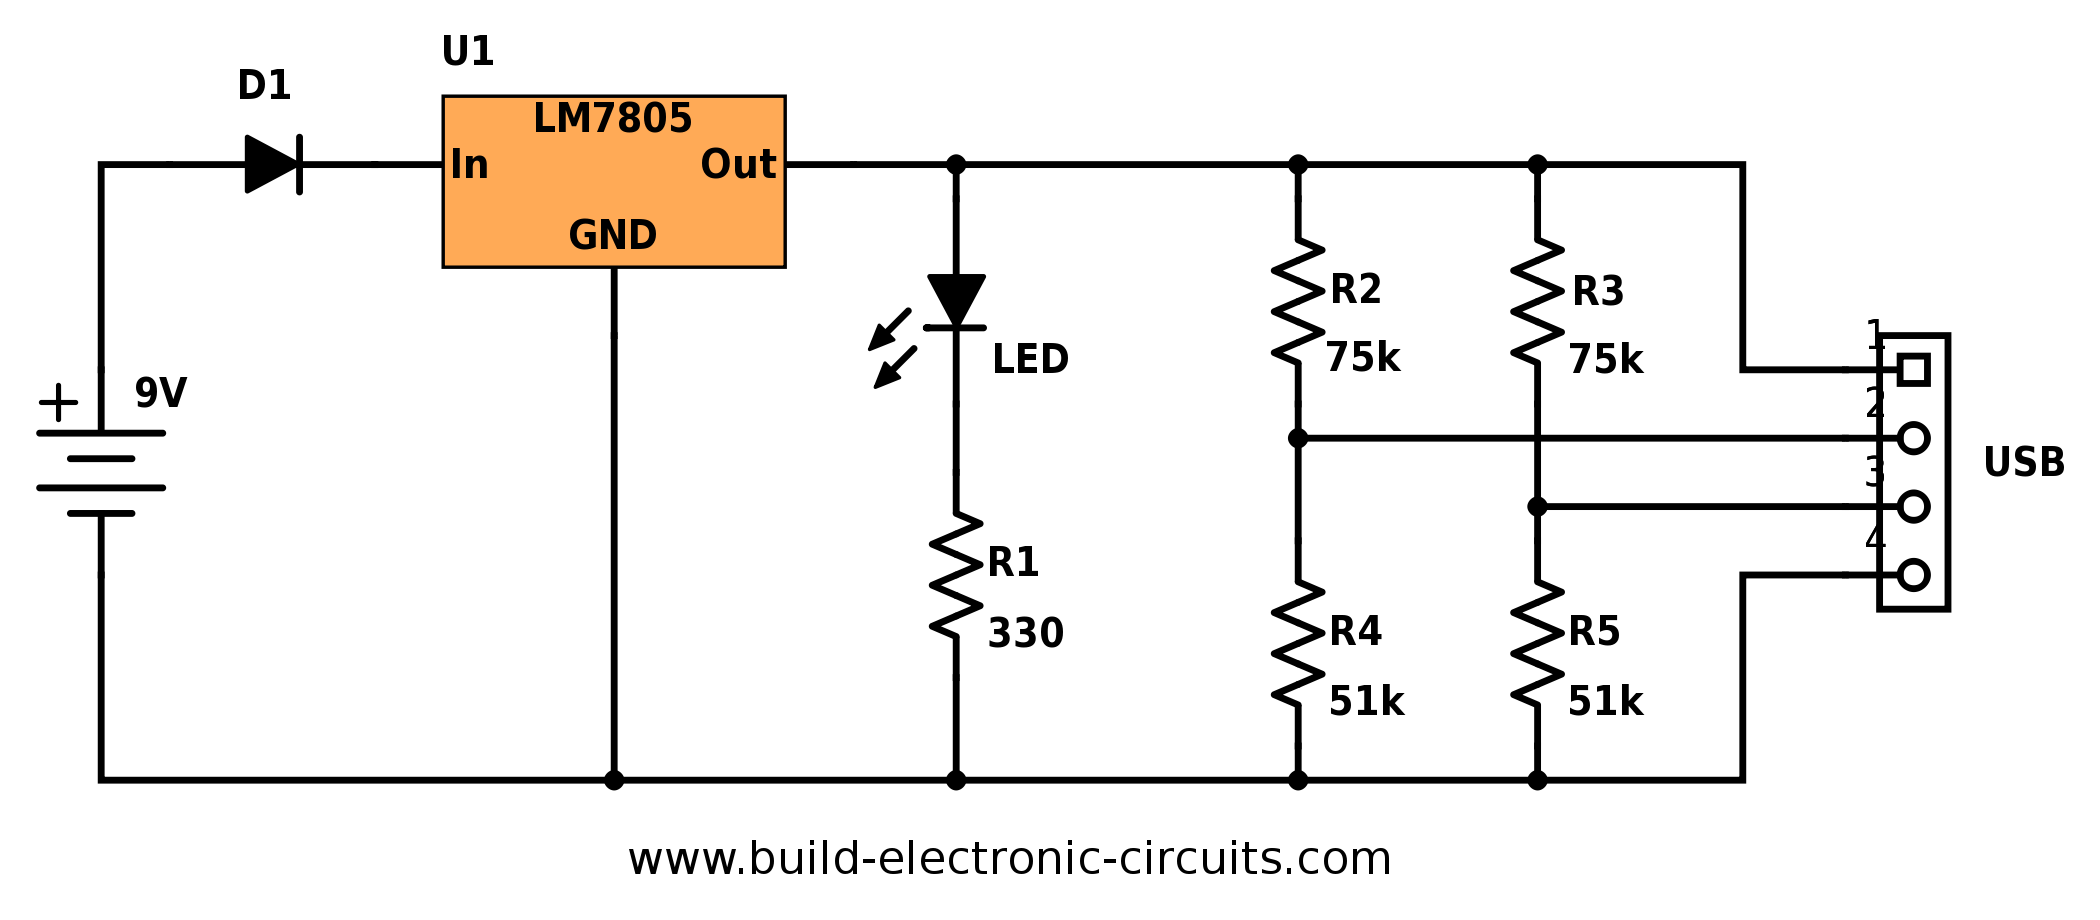 small resolution of unique circuits diagram diagram wiringdiagram diagramming diagramm visuals visualisation graphical